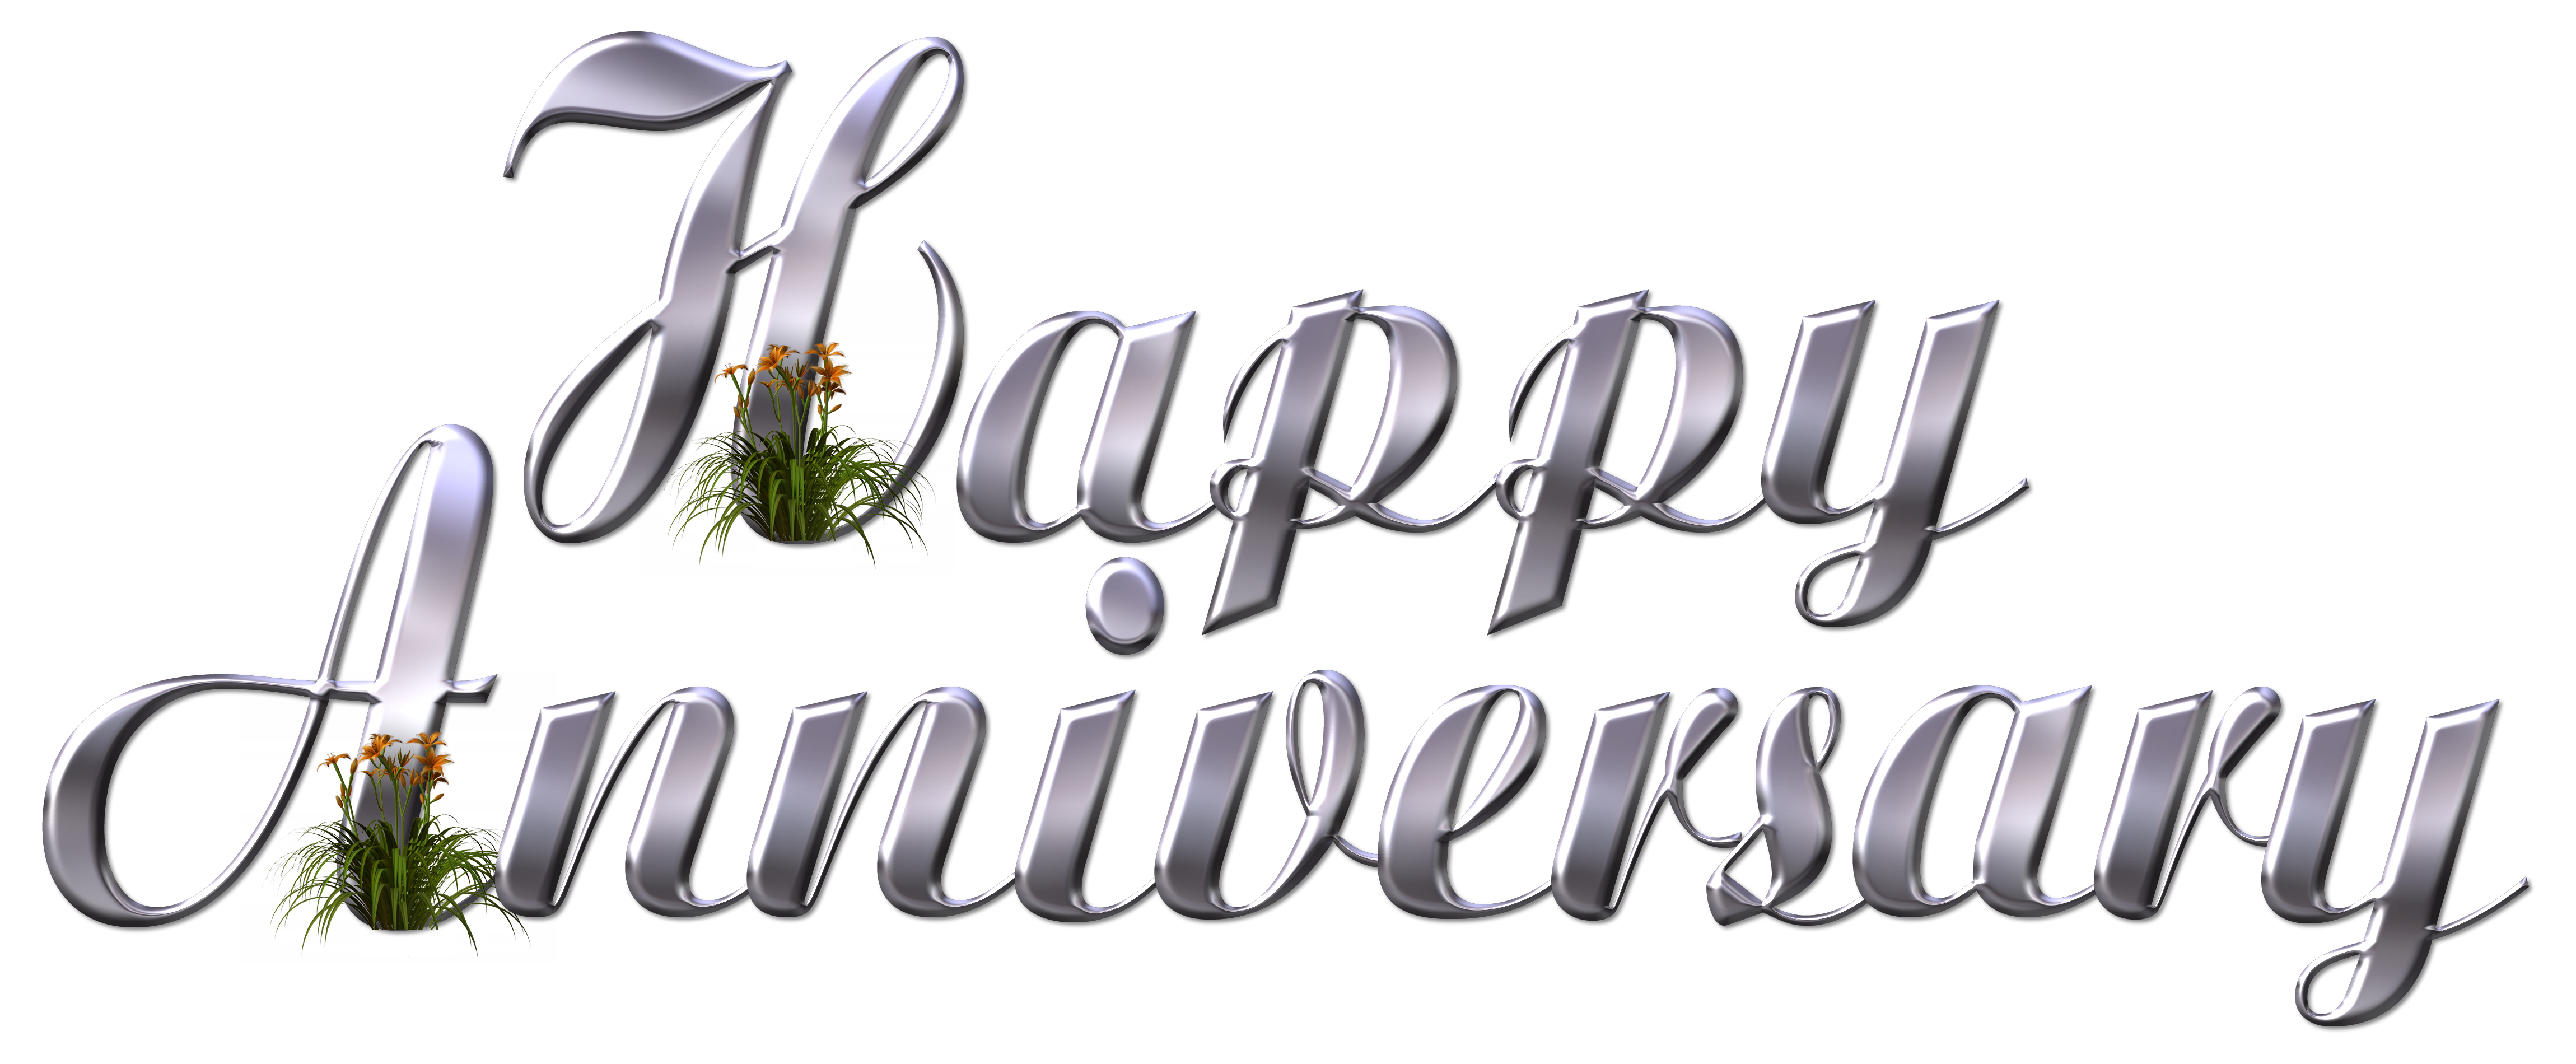 1 year anniversary free clipart picture black and white Free Business Anniversary Cliparts, Download Free Clip Art, Free ... picture black and white